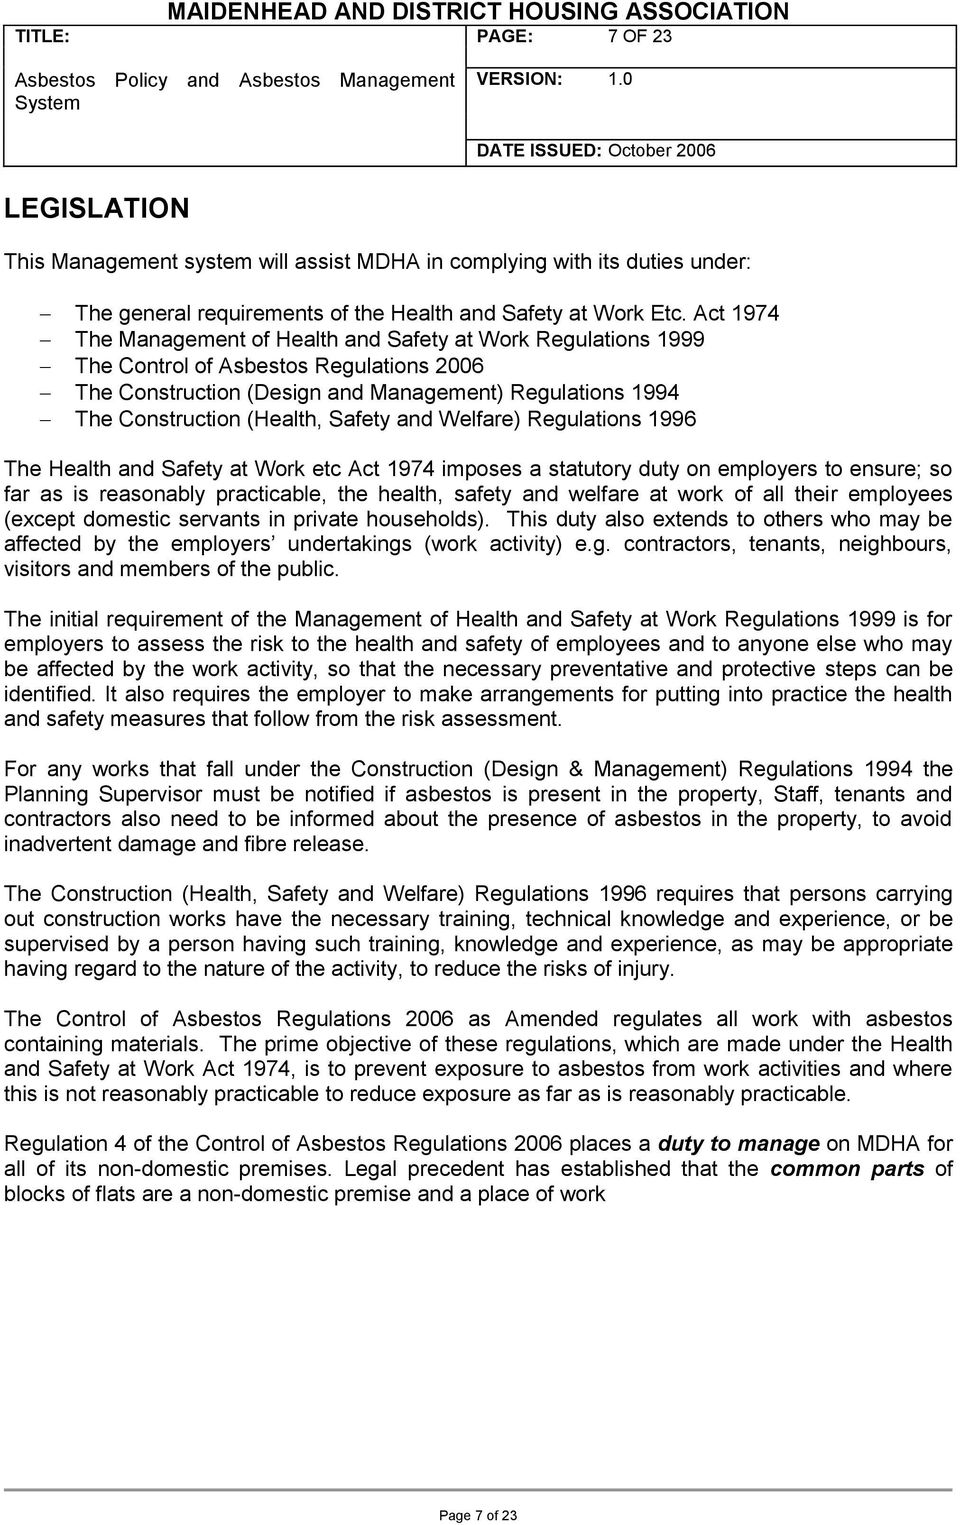 Safety and Welfare) Regulations 1996 The Health and Safety at Work etc Act 1974 imposes a statutory duty on employers to ensure; so far as is reasonably practicable, the health, safety and welfare at